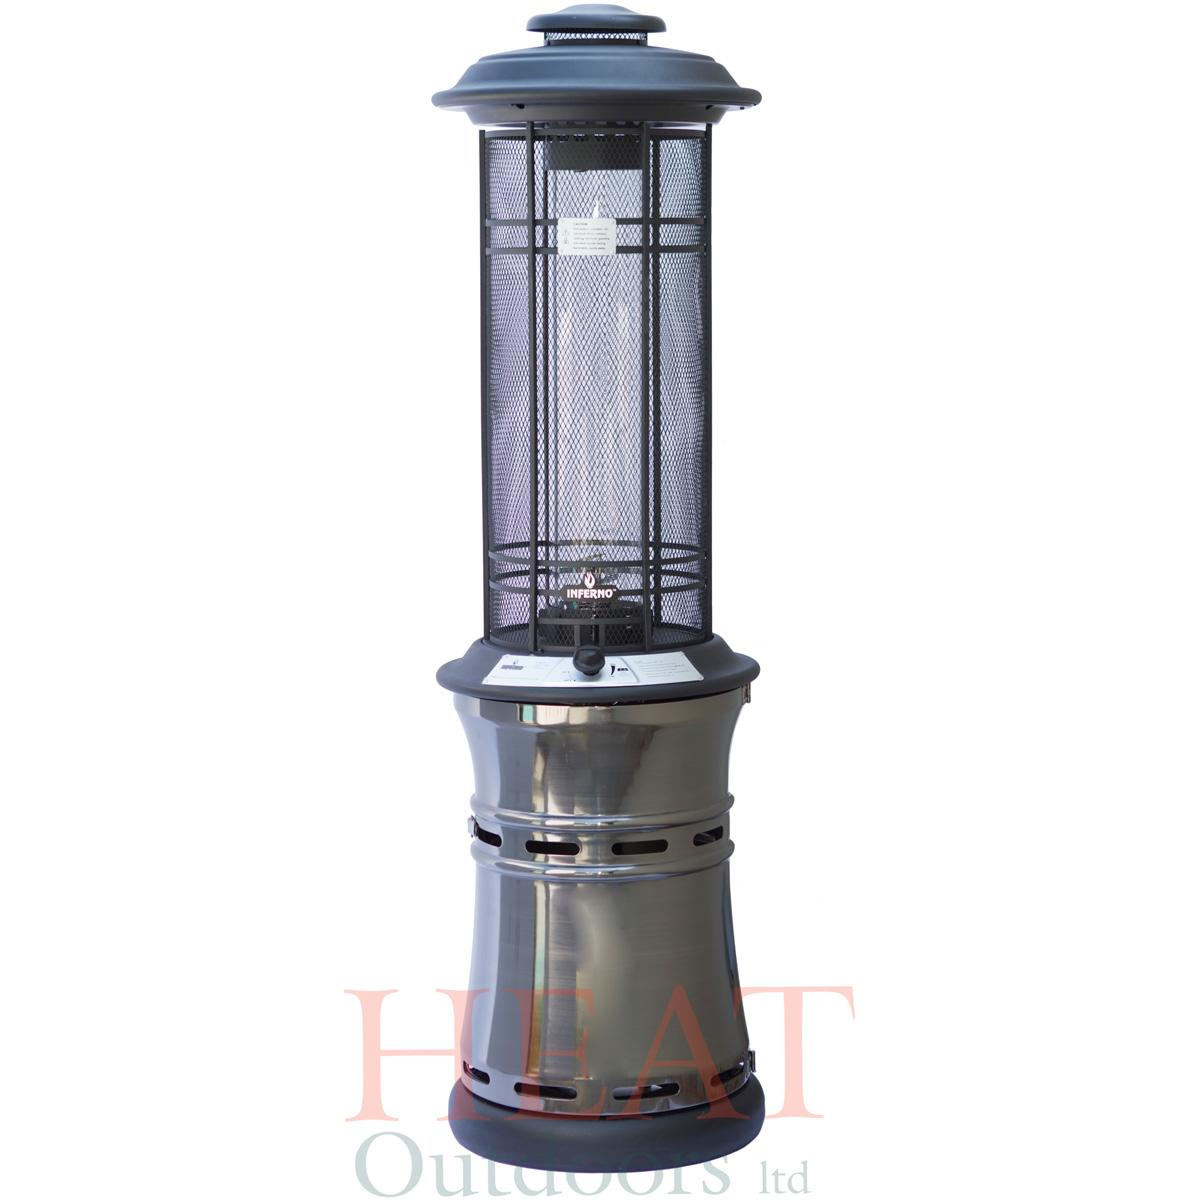 santorini spiral flame gas patio heater heat outdoors